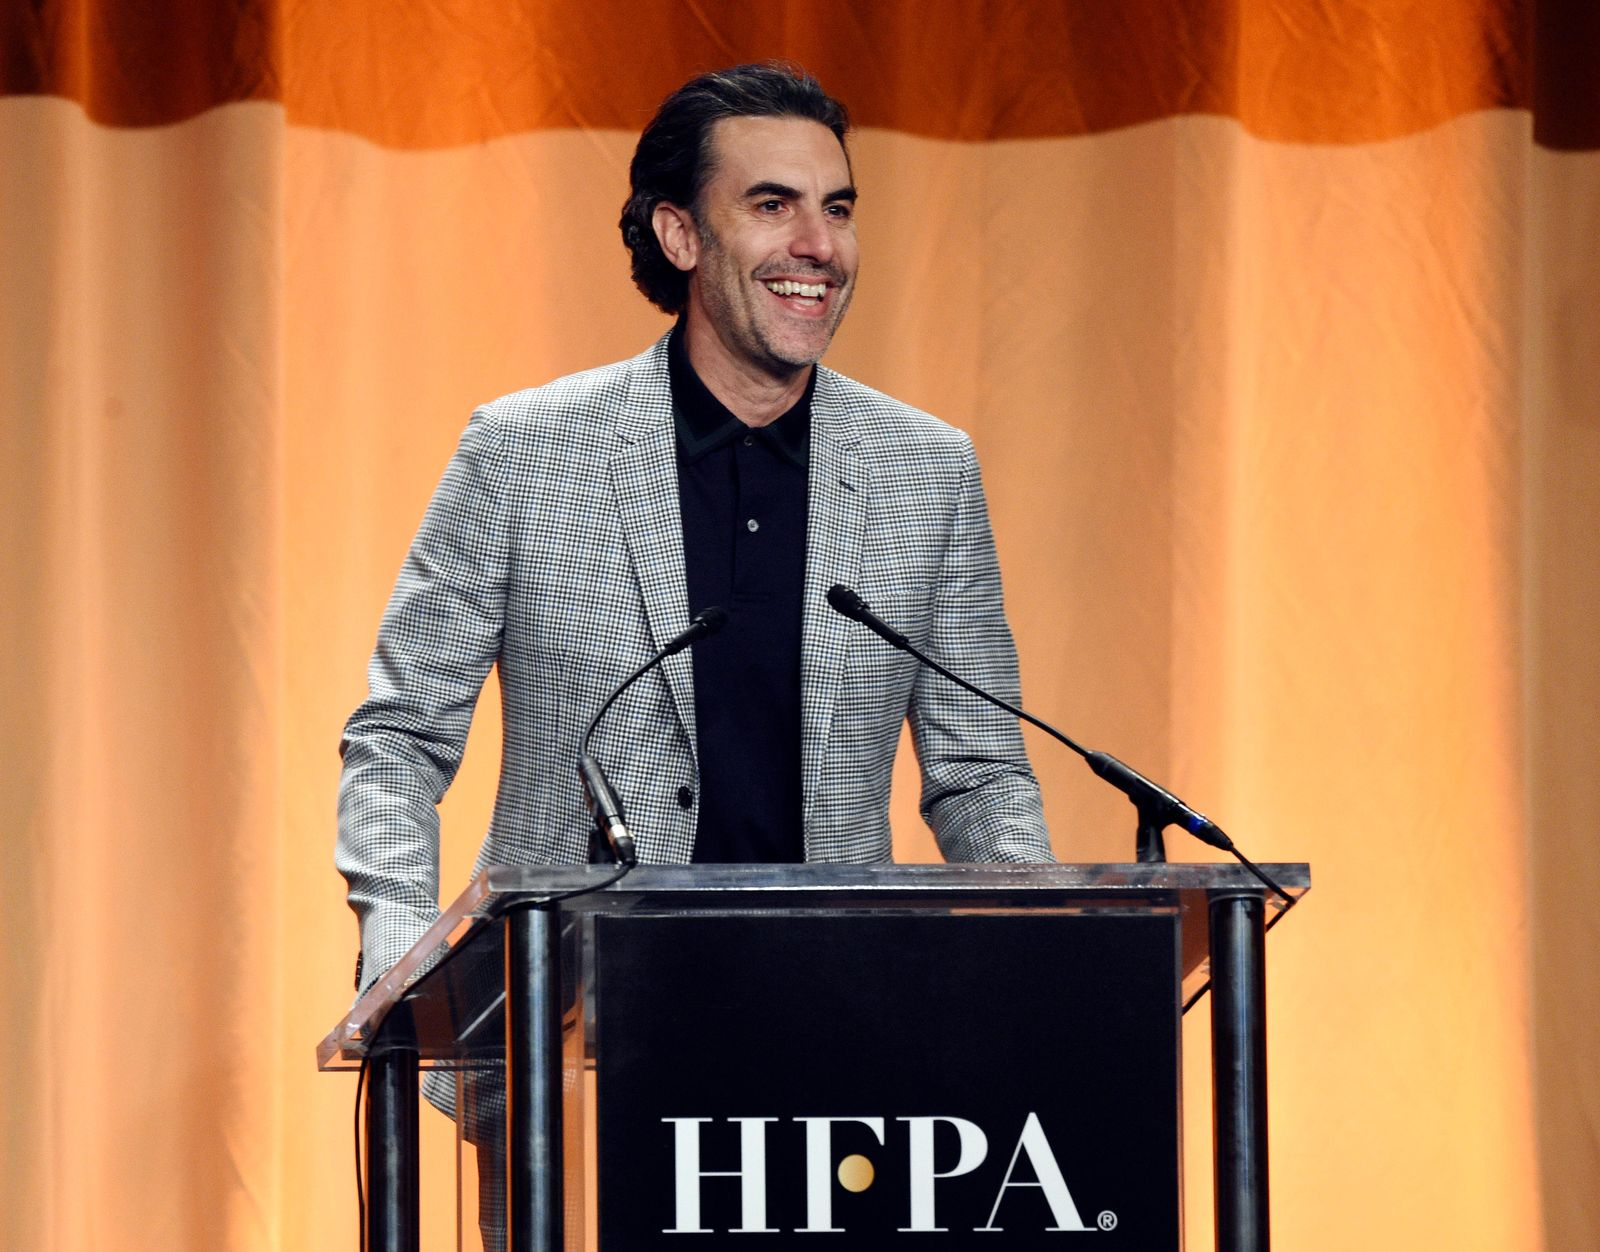 Actor Sacha Baron Cohen addresses the audience at the 2019 Hollywood Foreign Press Association's Annual Grants Banquet at the Beverly Wilshire Hotel, Wednesday, July 31, 2019, in Beverly Hills, Calif. (Photo by Chris Pizzello/Invision/AP)